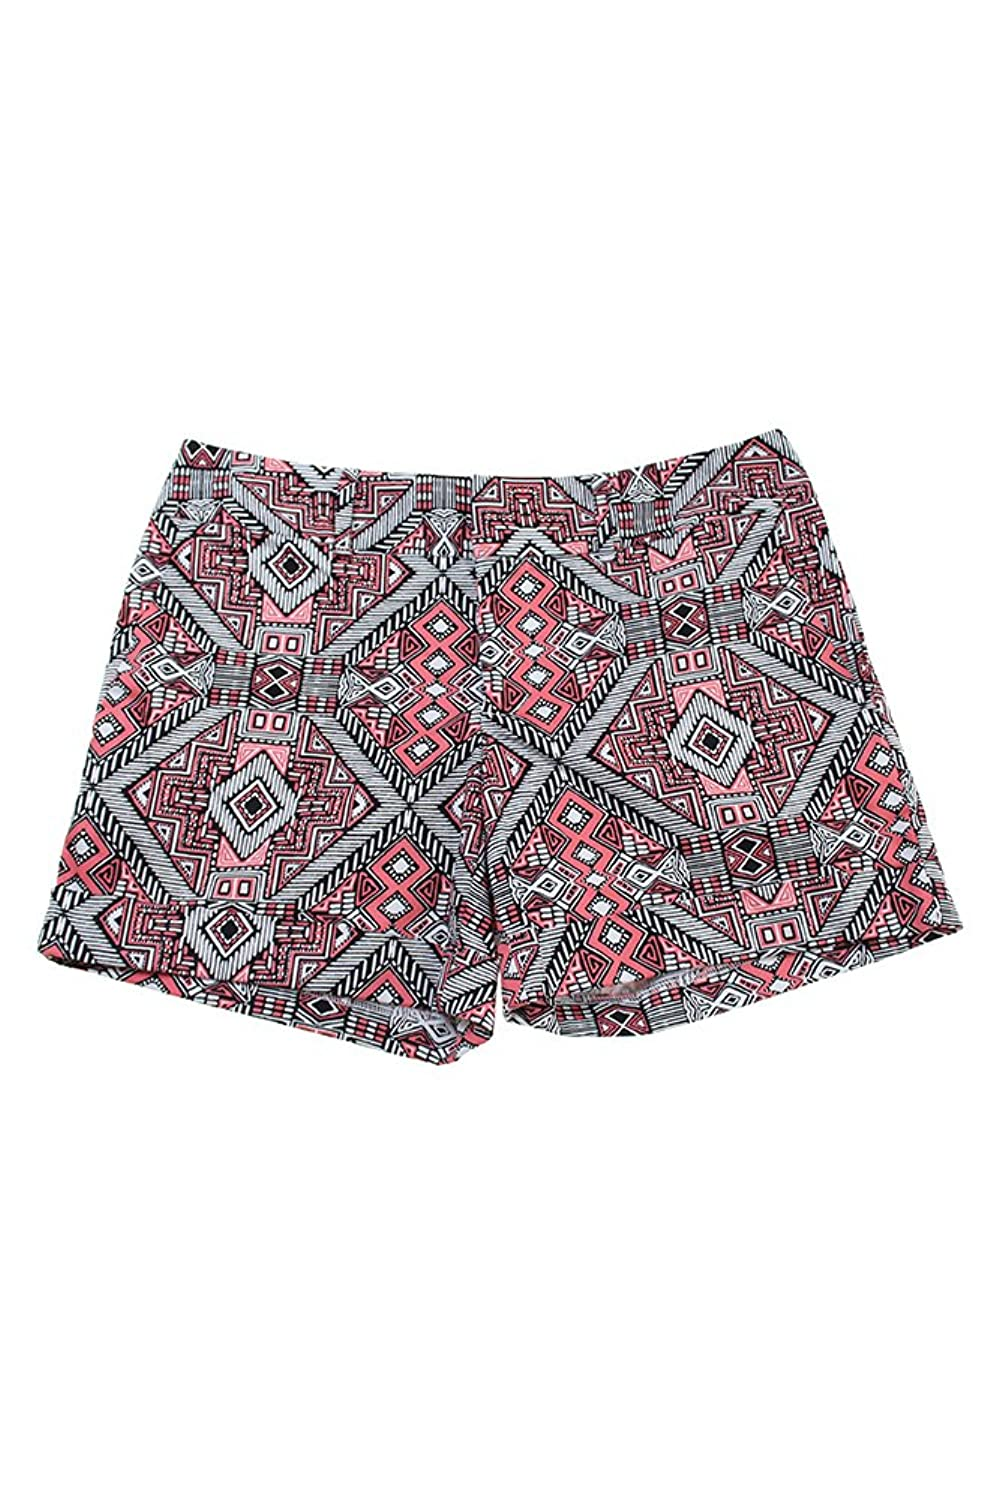 Inc International Concepts Pink Tribal Maze Printed Shorts